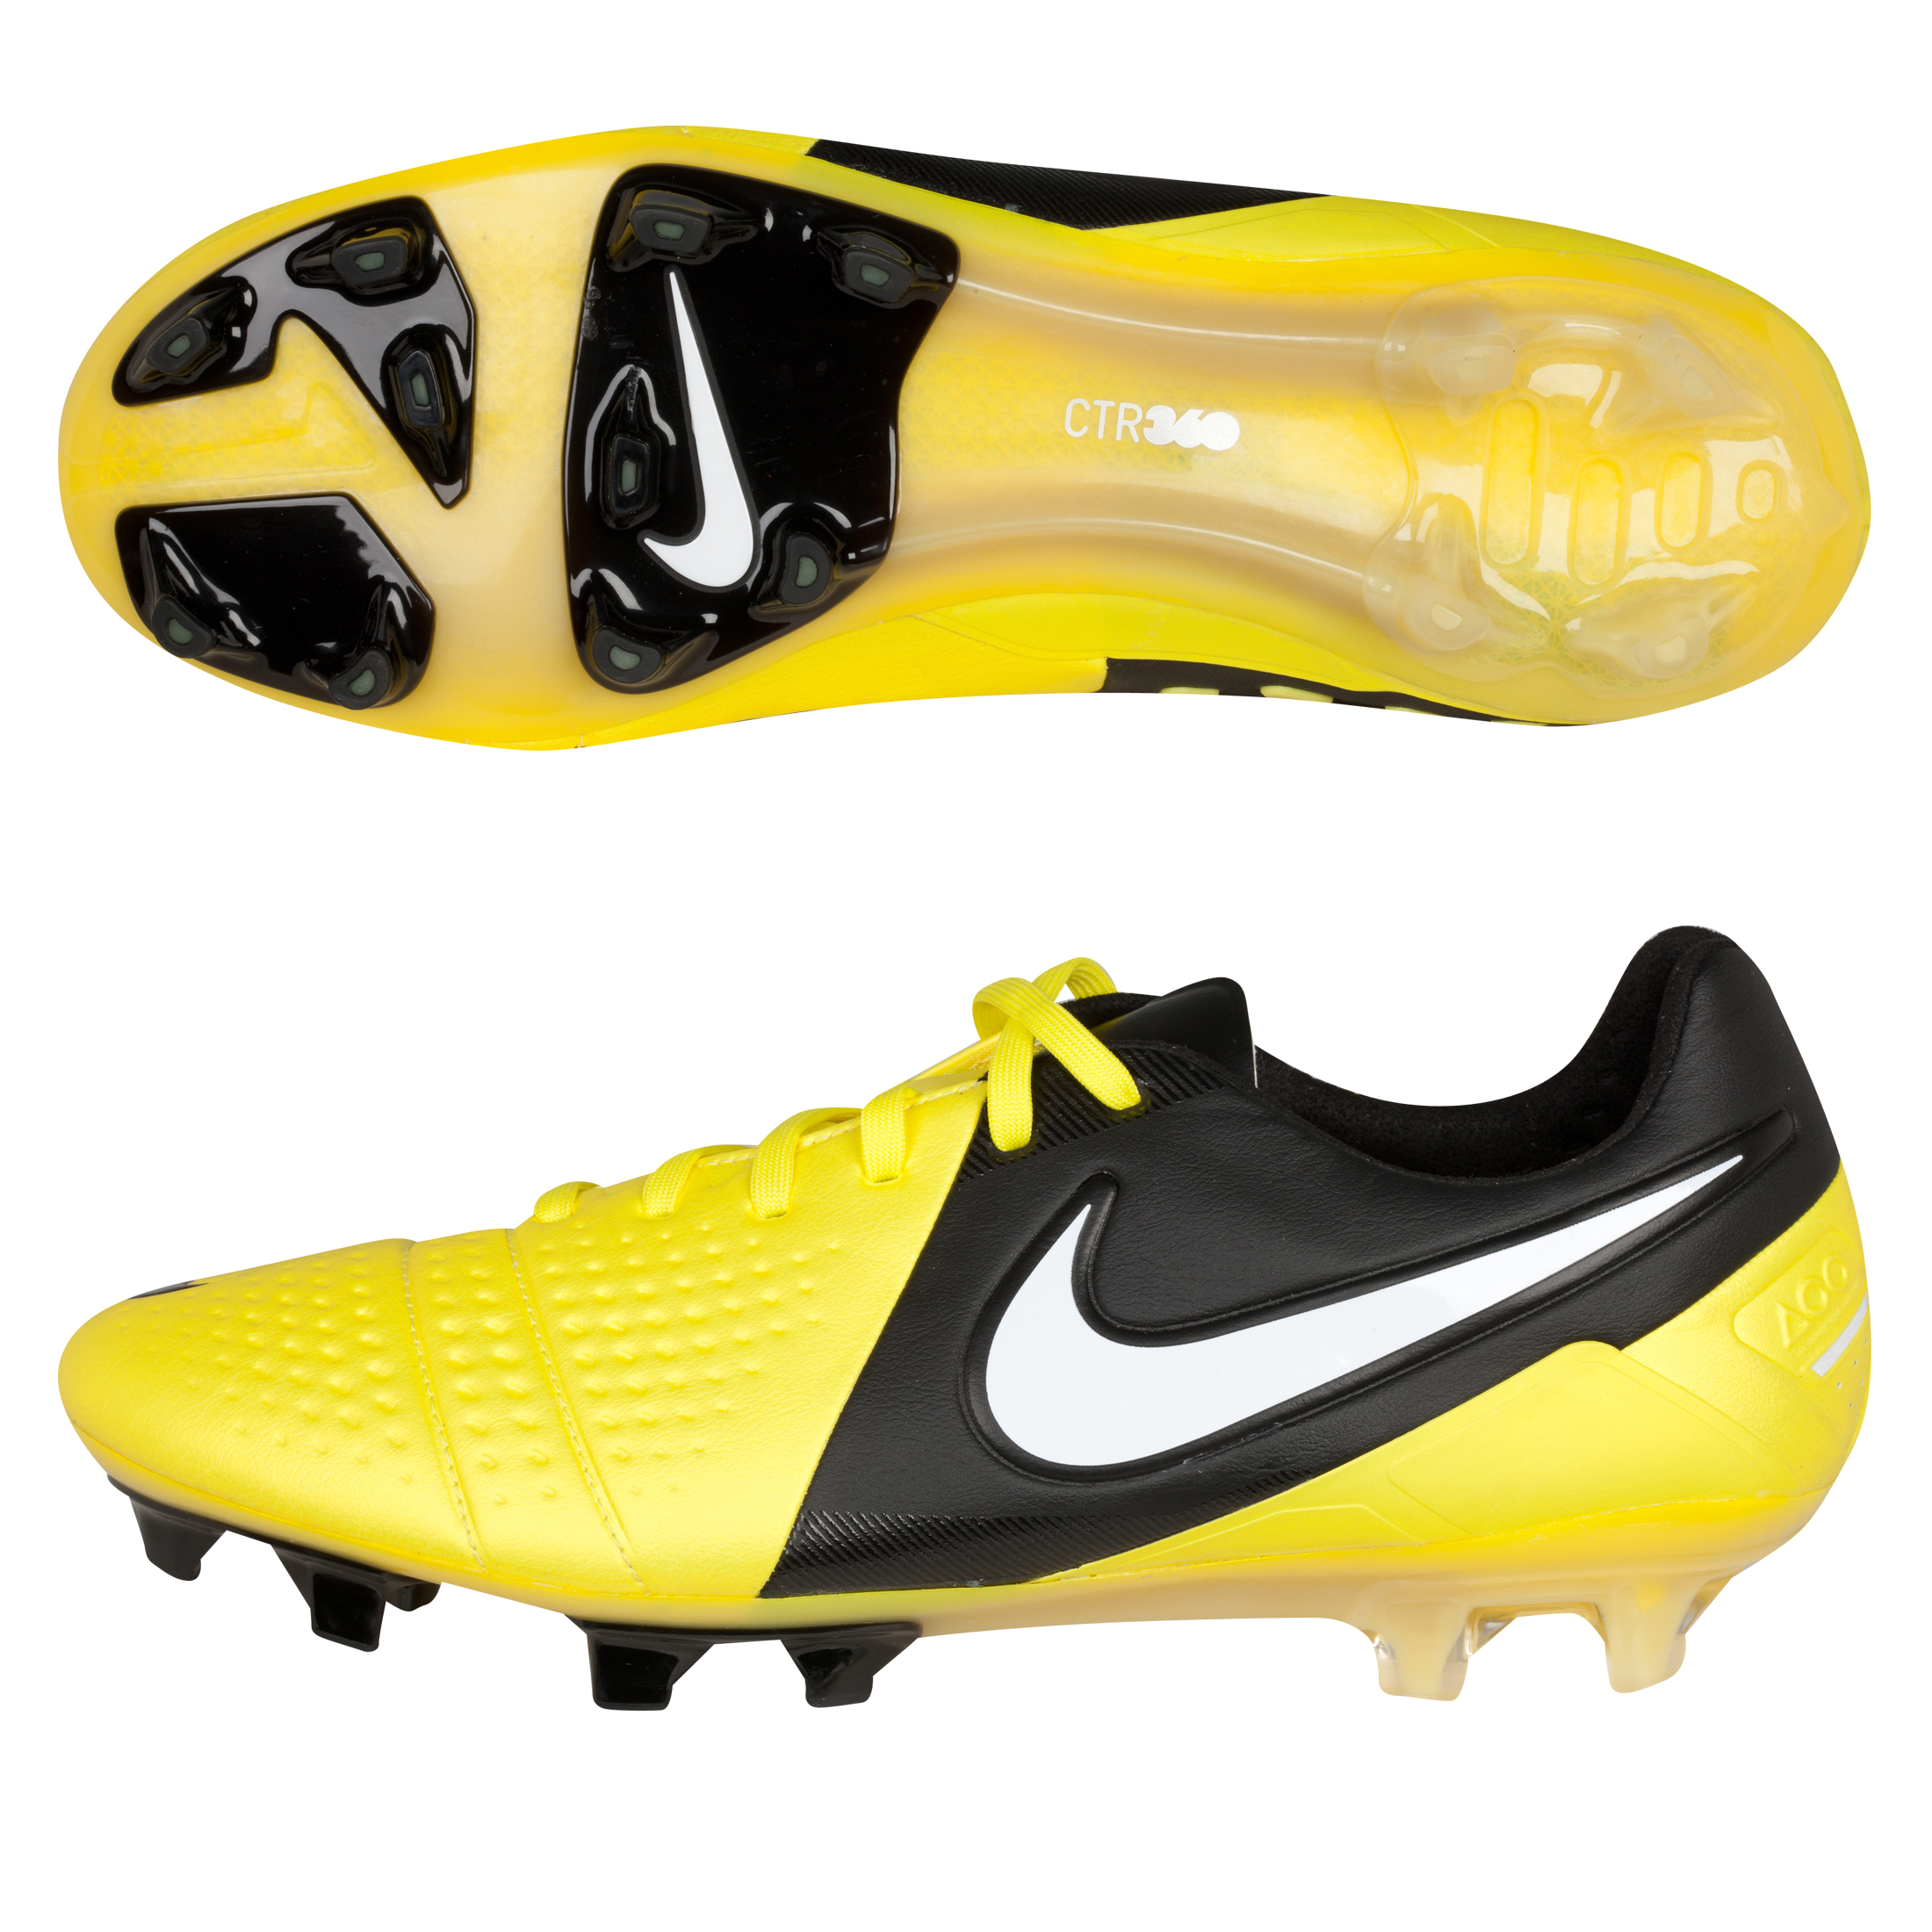 CTR360 Maestri III FG Sonic Yellow/White/Black